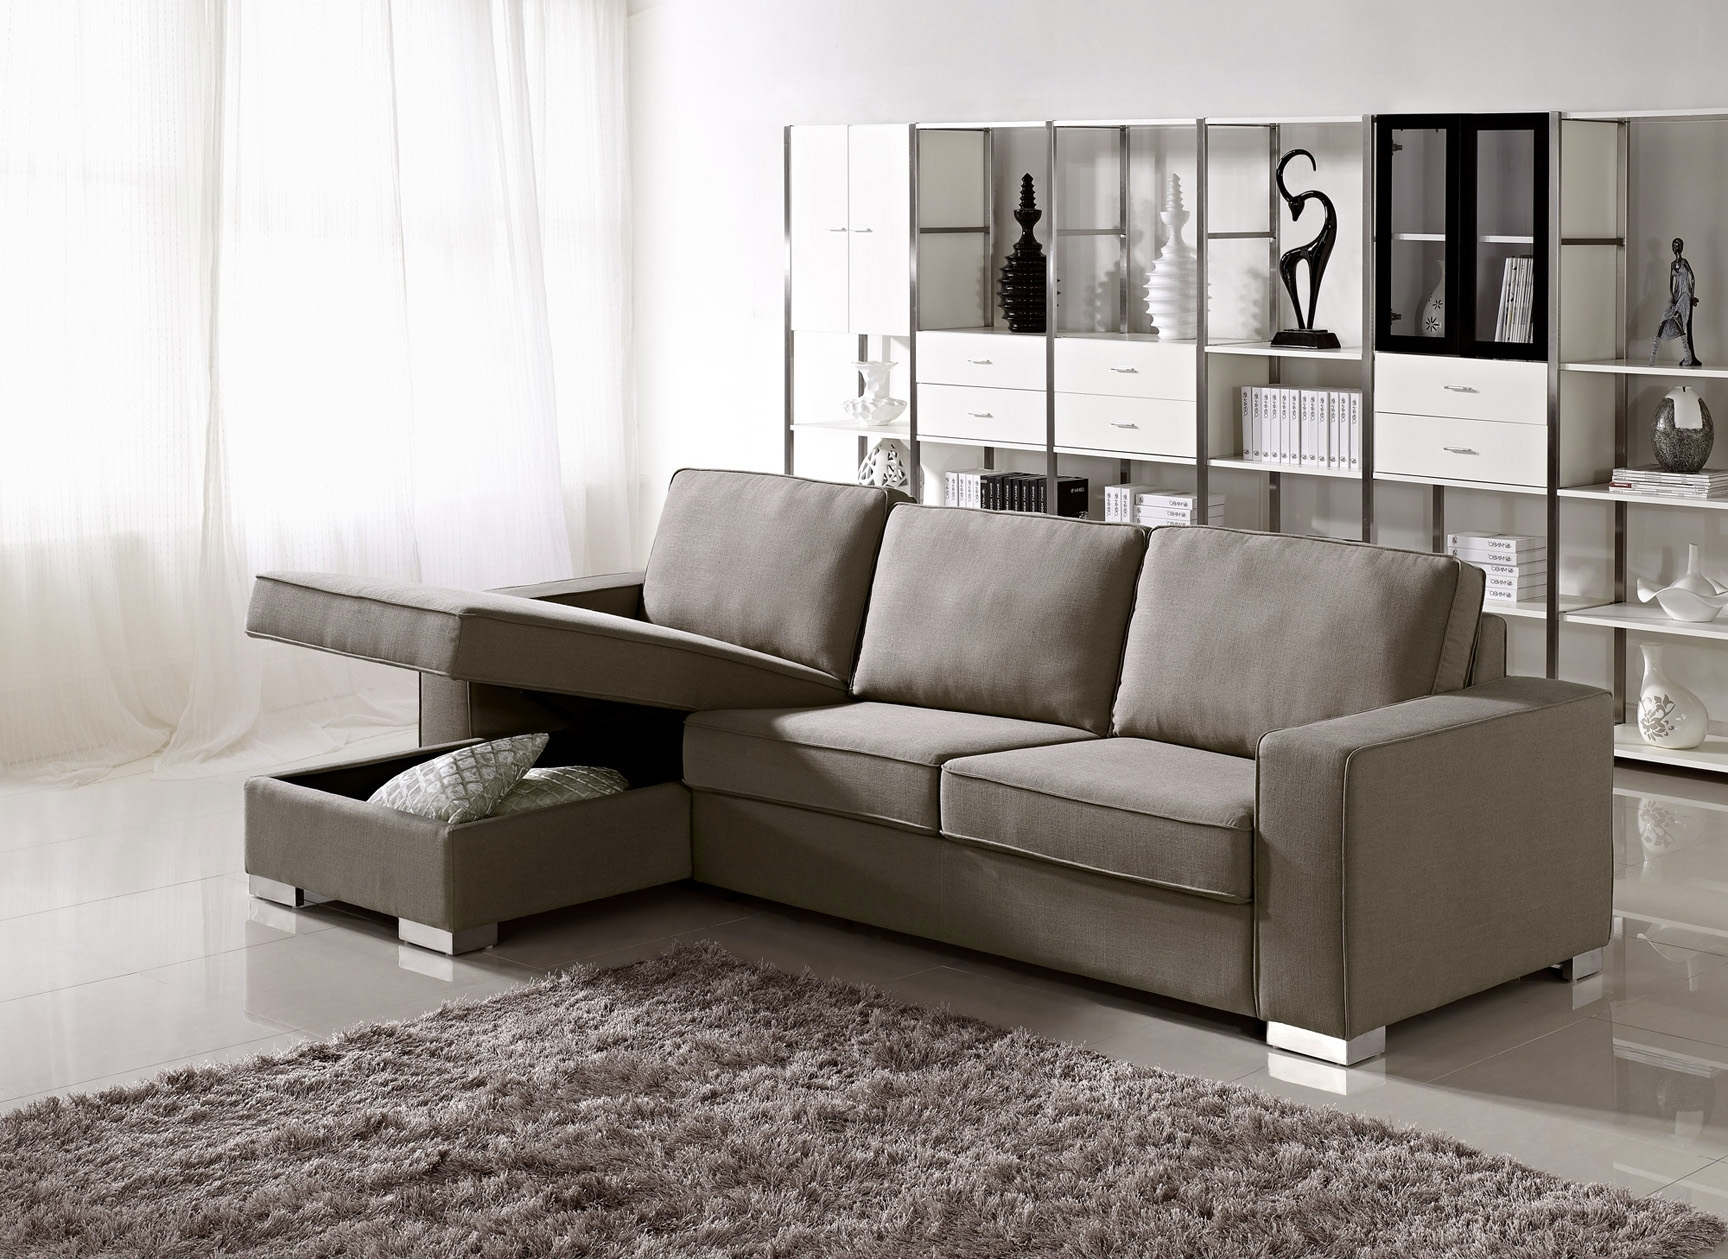 Widely Used Double Chaise Loveseat Small Sectional Sofa Bed Loveseat Chaise Intended For Small Couches With Chaise Lounge (View 3 of 15)